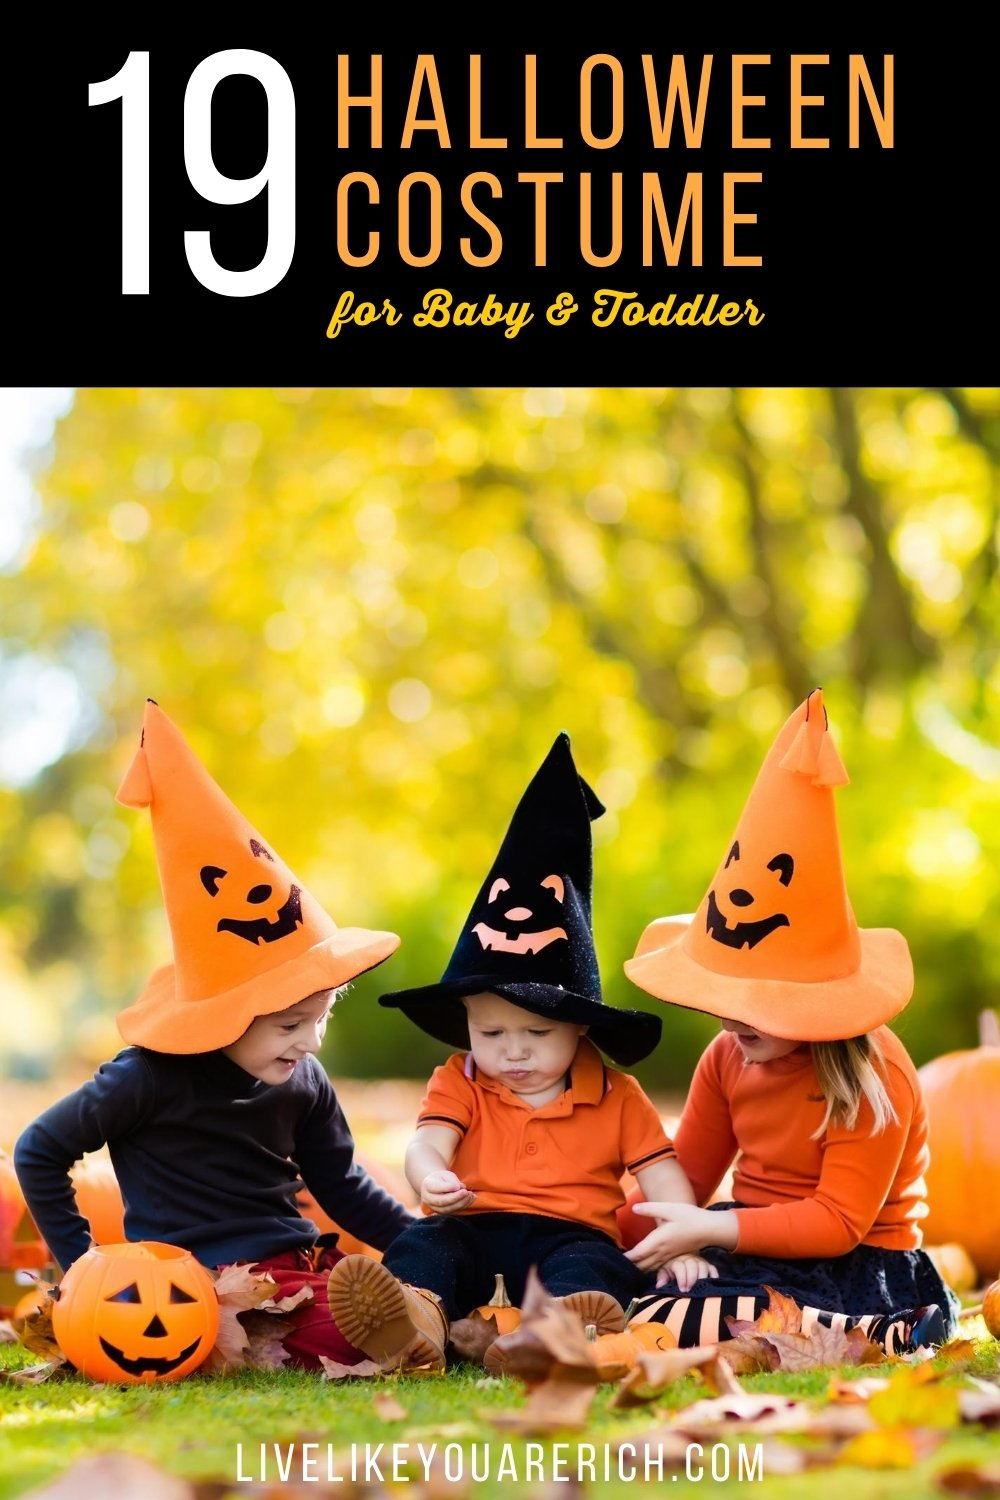 I love dressing my kids up for Halloween. It is so much fun for me. I admit I begin thinking about ideas of what they should be months before Halloween. Here are 19 super darling and inexpensive homemade baby/toddler halloween costumes - most of them are fairly quick to put together too!